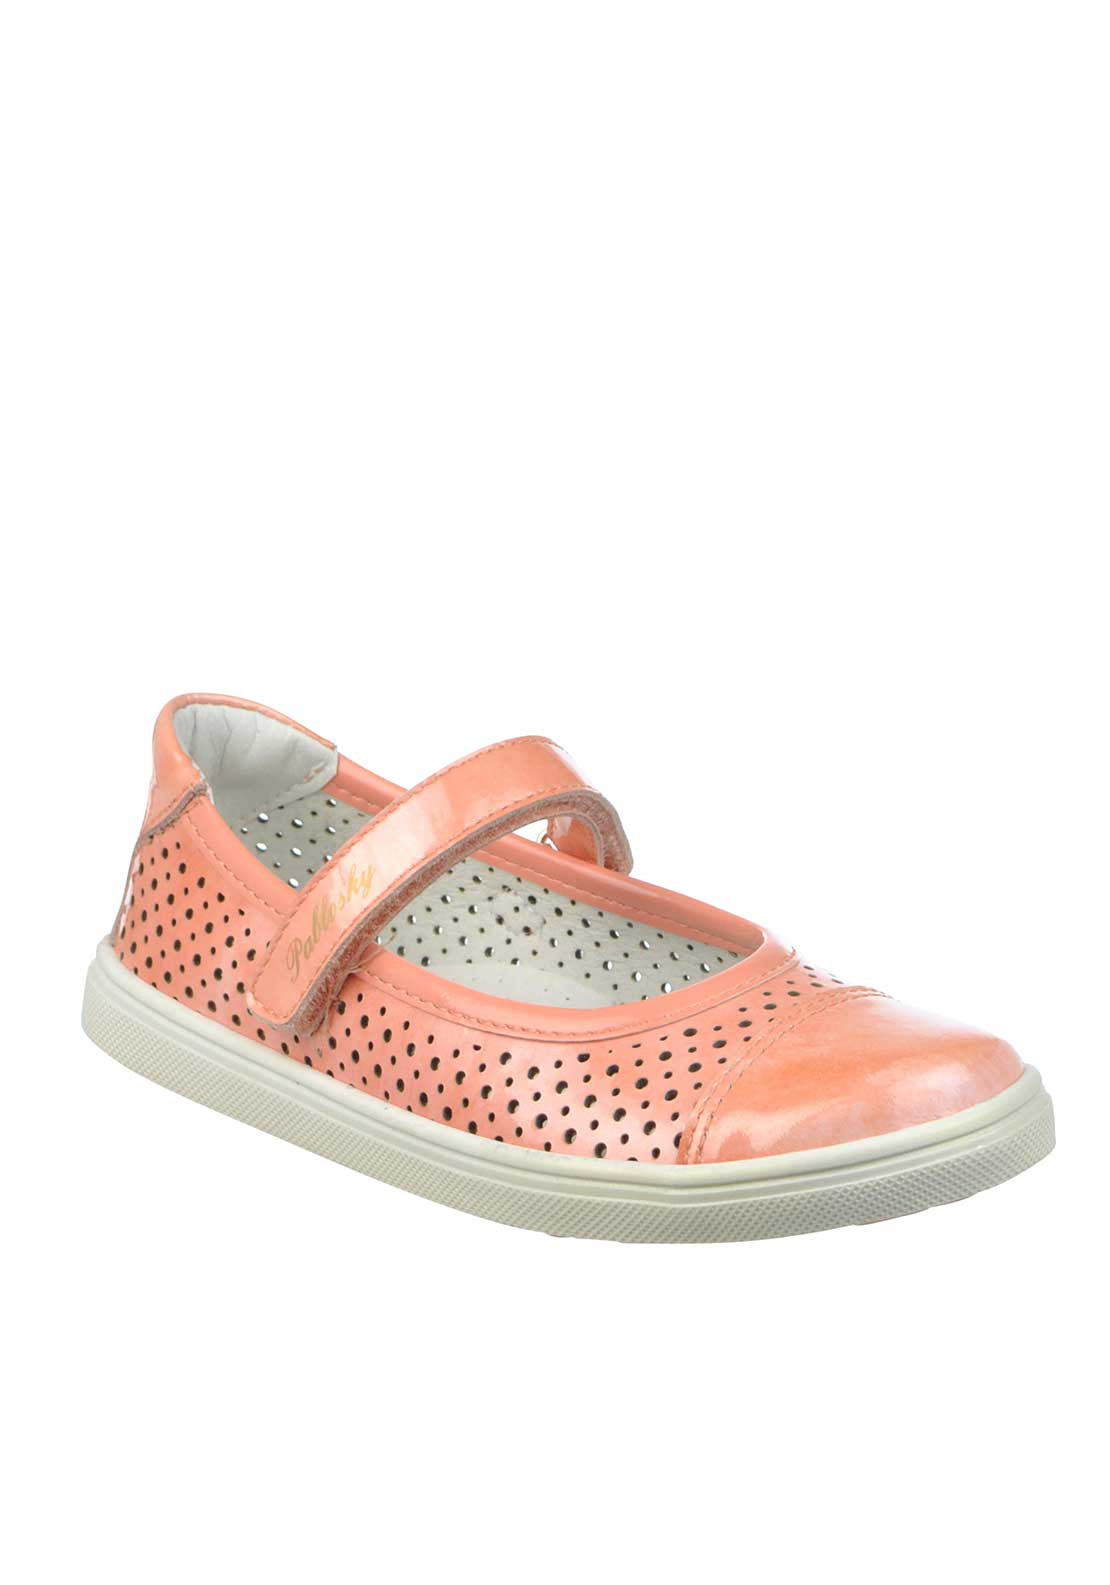 Pablosky Girls Patent Leather Perforated Velcro Strap Pumps, Coral